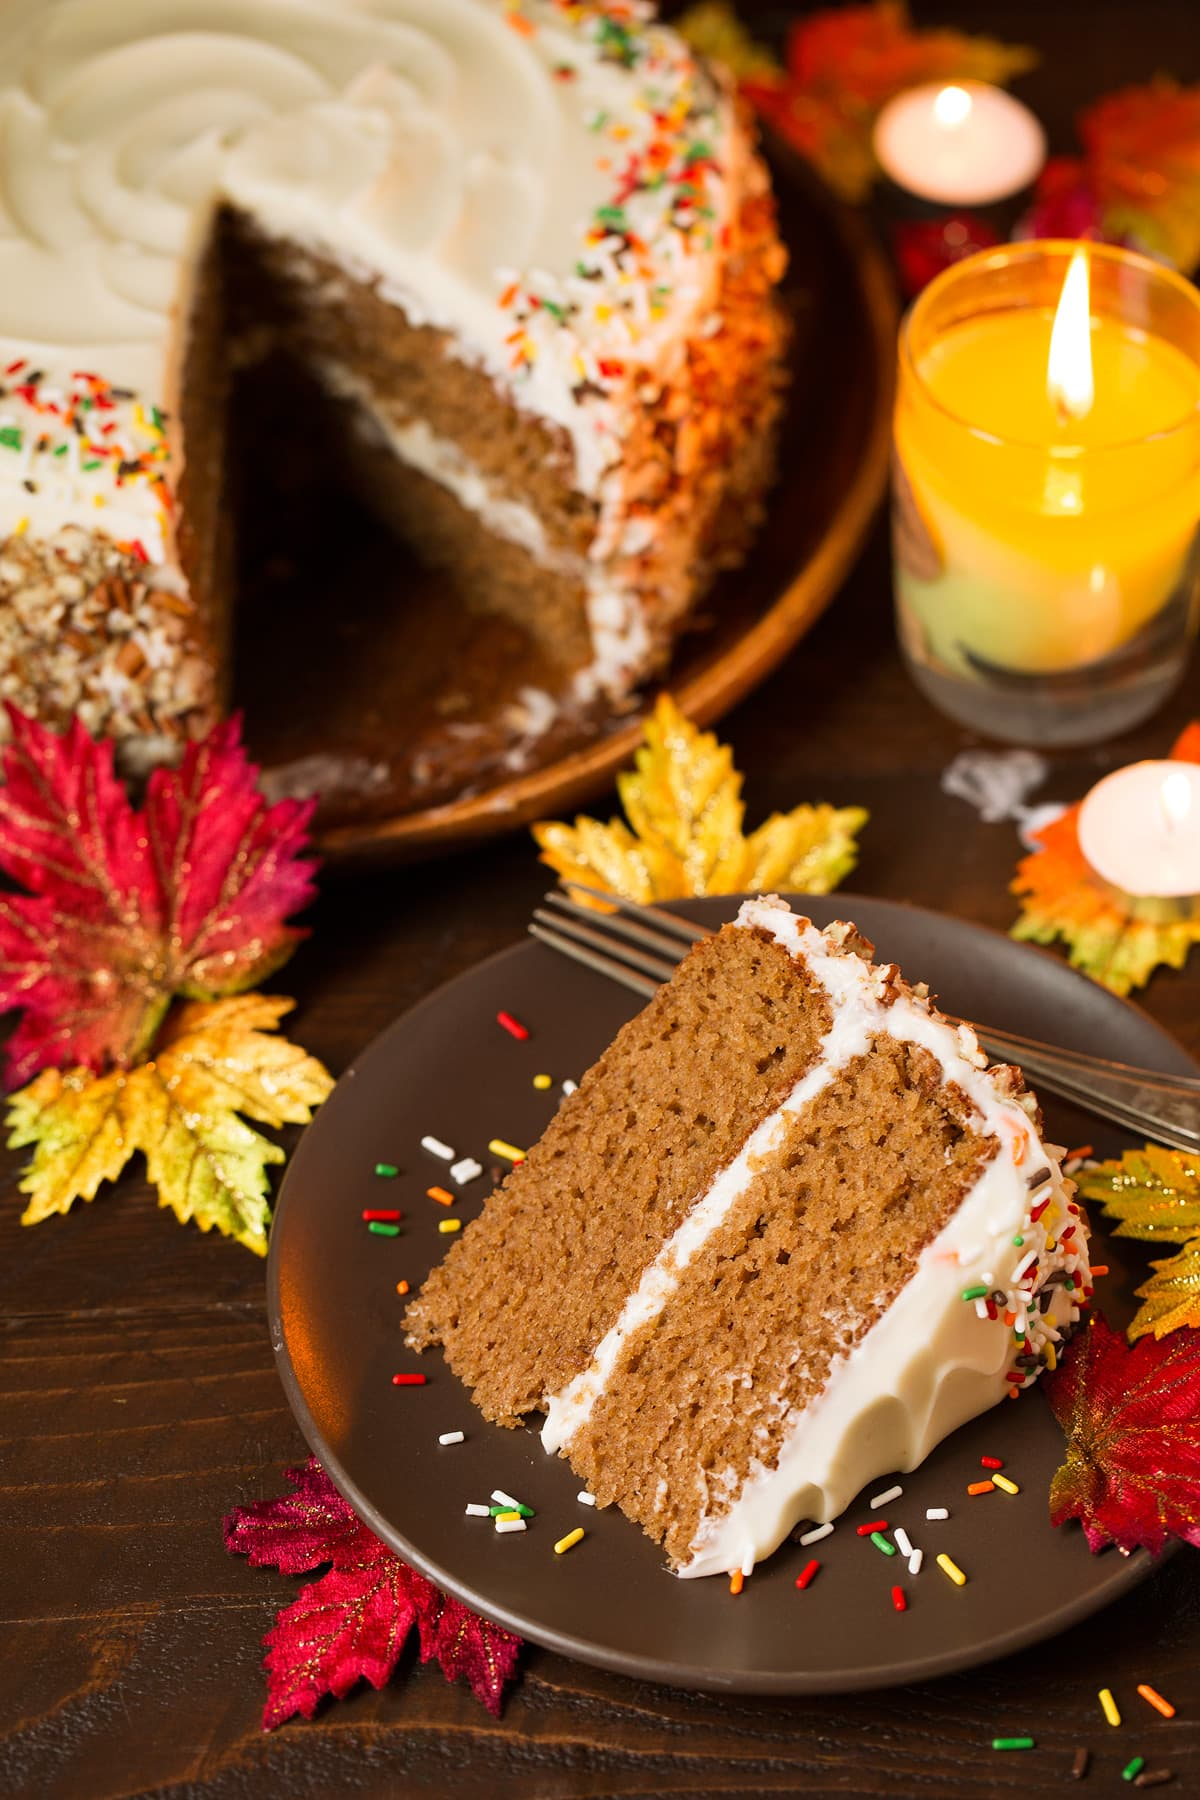 One slice of spice cake on a single serve plate and a whole spice cake is in the background. Decorations in the image include fall leaves, a lit candle and a wooden surface.